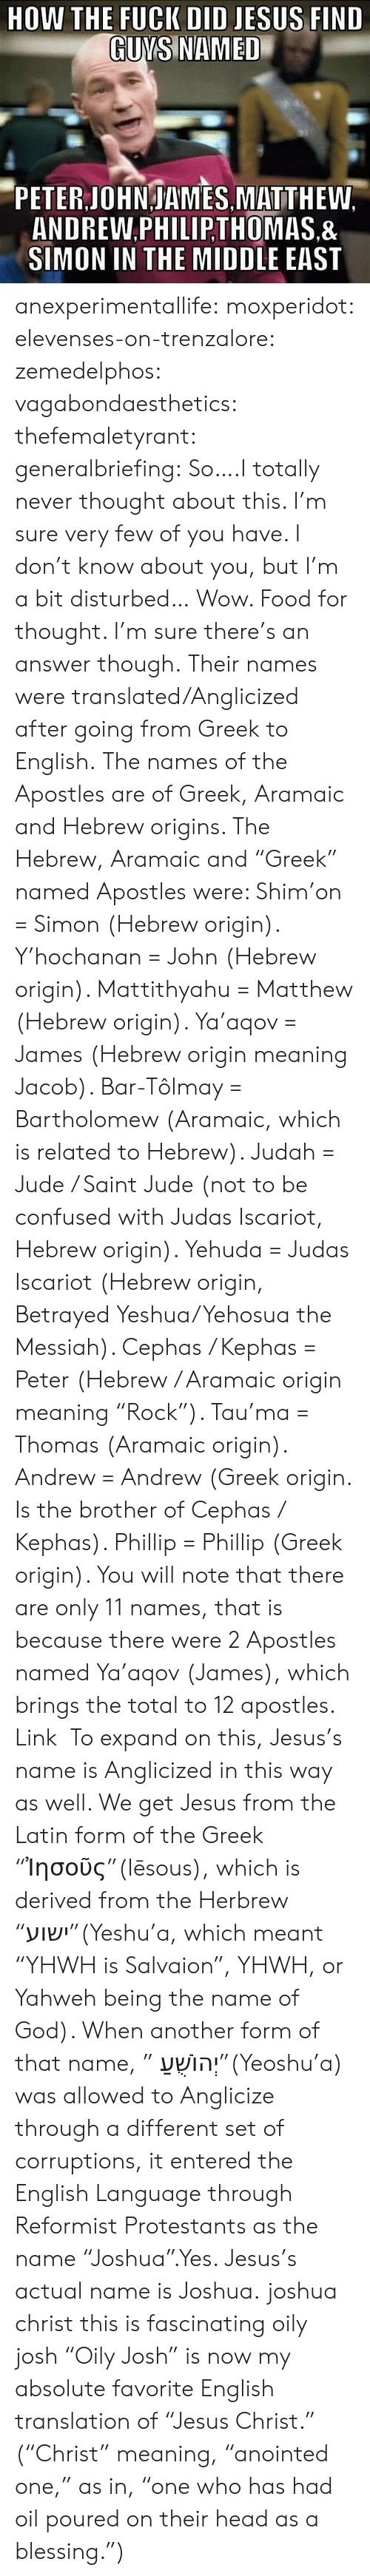 """Apostles: DID JESUS FIND  GUNS NAMED  PETER JOHNJAMES MATTHEW.  ANDREW.PHILIP,THOMAS.&  SIMON IN THE MIDDLE EAST anexperimentallife:  moxperidot:  elevenses-on-trenzalore:  zemedelphos:  vagabondaesthetics:  thefemaletyrant:  generalbriefing:  So….I totally never thought about this. I'm sure very few of you have. I don't know about you, but I'm a bit disturbed…  Wow. Food for thought. I'm sure there's an answer though.  Their names were translated/Anglicized after going from Greek to English. The names of the Apostles are of Greek, Aramaic and Hebrew origins. The Hebrew, Aramaic and """"Greek"""" named Apostles were:  Shim'on = Simon (Hebrew origin).  Y'hochanan = John (Hebrew origin).  Mattithyahu = Matthew (Hebrew origin).  Ya'aqov = James (Hebrew origin meaning Jacob).  Bar-Tôlmay = Bartholomew (Aramaic, which is related to Hebrew).  Judah = Jude / Saint Jude (not to be confused with Judas Iscariot, Hebrew origin).  Yehuda = Judas Iscariot (Hebrew origin, Betrayed Yeshua/Yehosua the Messiah).  Cephas / Kephas = Peter (Hebrew / Aramaic origin meaning """"Rock"""").  Tau'ma = Thomas (Aramaic origin).  Andrew = Andrew (Greek origin. Is the brother of Cephas / Kephas).  Phillip = Phillip (Greek origin).  You will note that there are only 11 names, that is because there were 2 Apostles named Ya'aqov (James), which brings the total to 12 apostles. Link  To expand on this, Jesus's name is Anglicized in this way as well. We get Jesus from the Latin form of the Greek """"Ἰησοῦς""""(Iēsous), which is derived from the Herbrew """"ישוע""""(Yeshu'a, which meant """"YHWH is Salvaion"""", YHWH, or Yahweh being the name of God). When another form of that name, """" יְהוֹשֻׁעַ""""(Yeoshu'a) was allowed to Anglicize through a different set of corruptions, it entered the English Language through Reformist Protestants as the name """"Joshua"""".Yes. Jesus's actual name is Joshua.  joshua christ this is fascinating   oily josh  """"Oily Josh"""" is now my absolute favorite English translation of """"Jesus Christ."""" (""""Christ"""" meaning, """